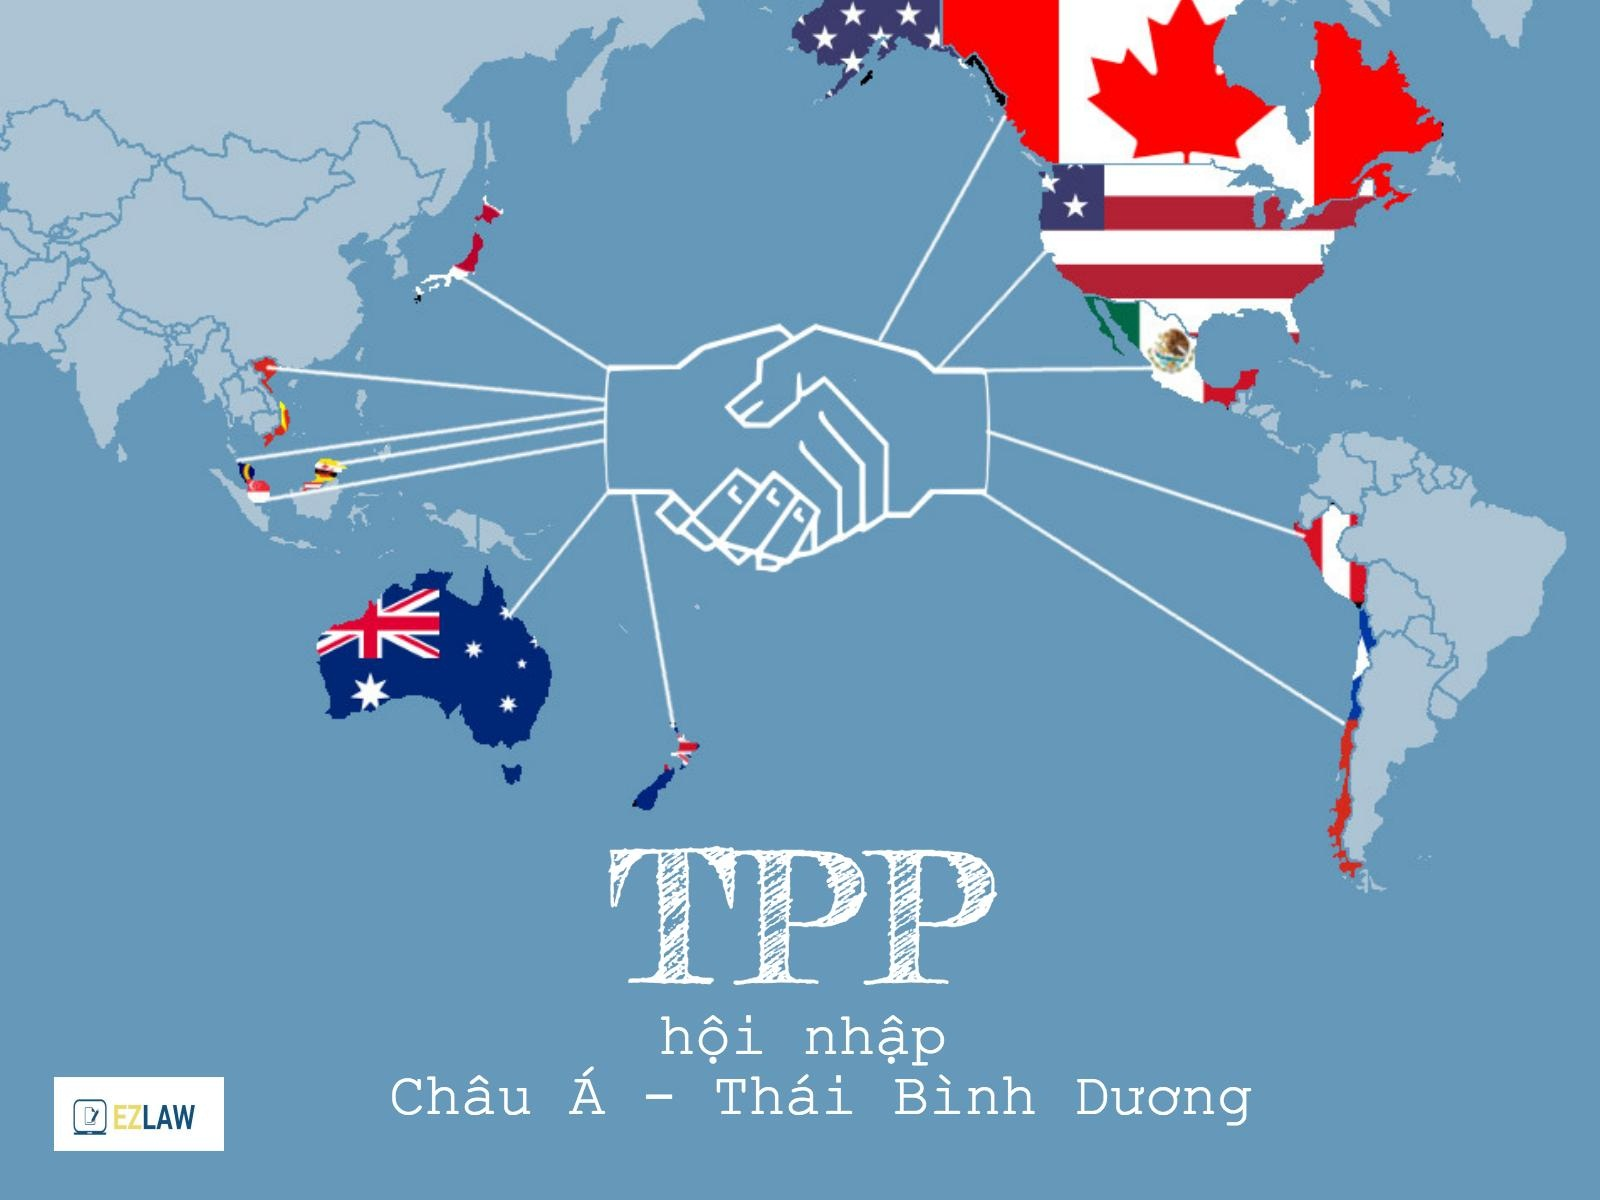 10 kien thuc can ban ve hiep dinh tpp hinh anh 1